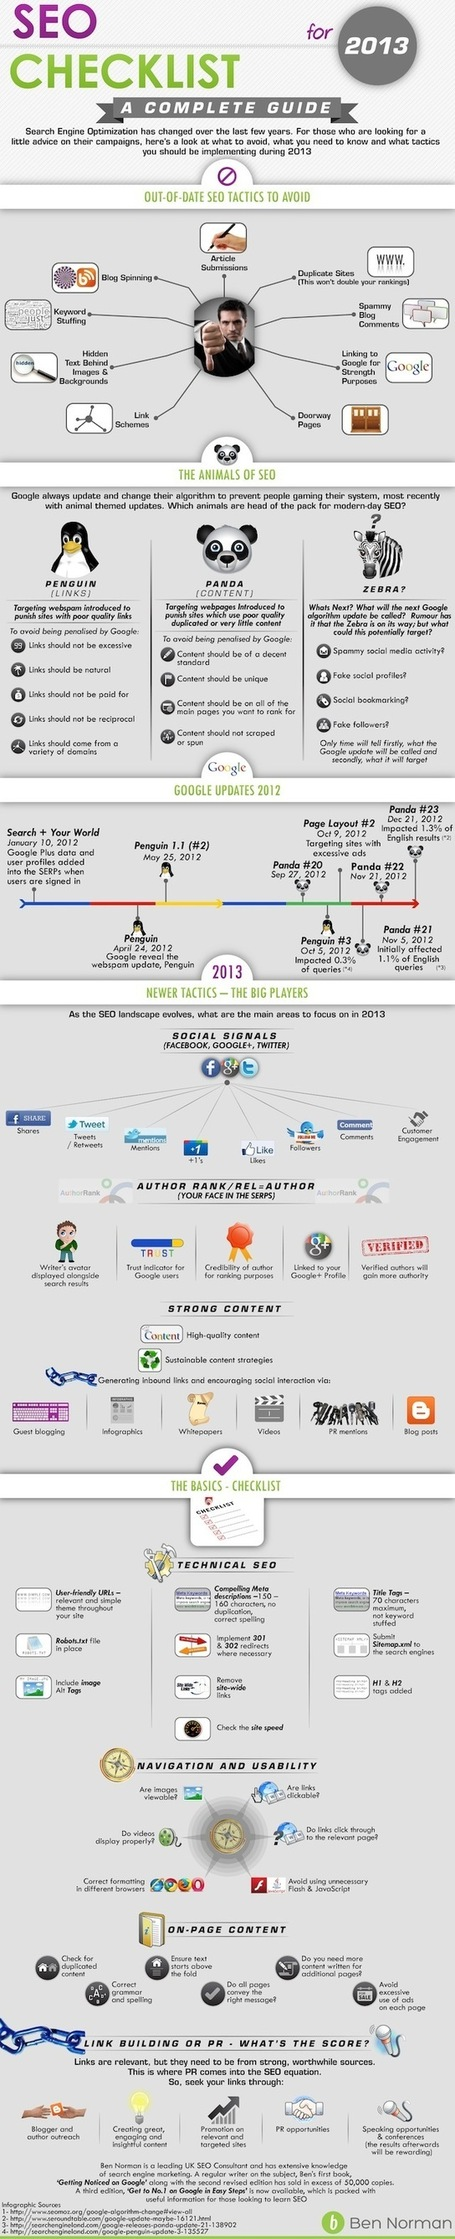 Infographic: SEO in 2013, what to do and what to avoid | digital marketing strategy | Scoop.it